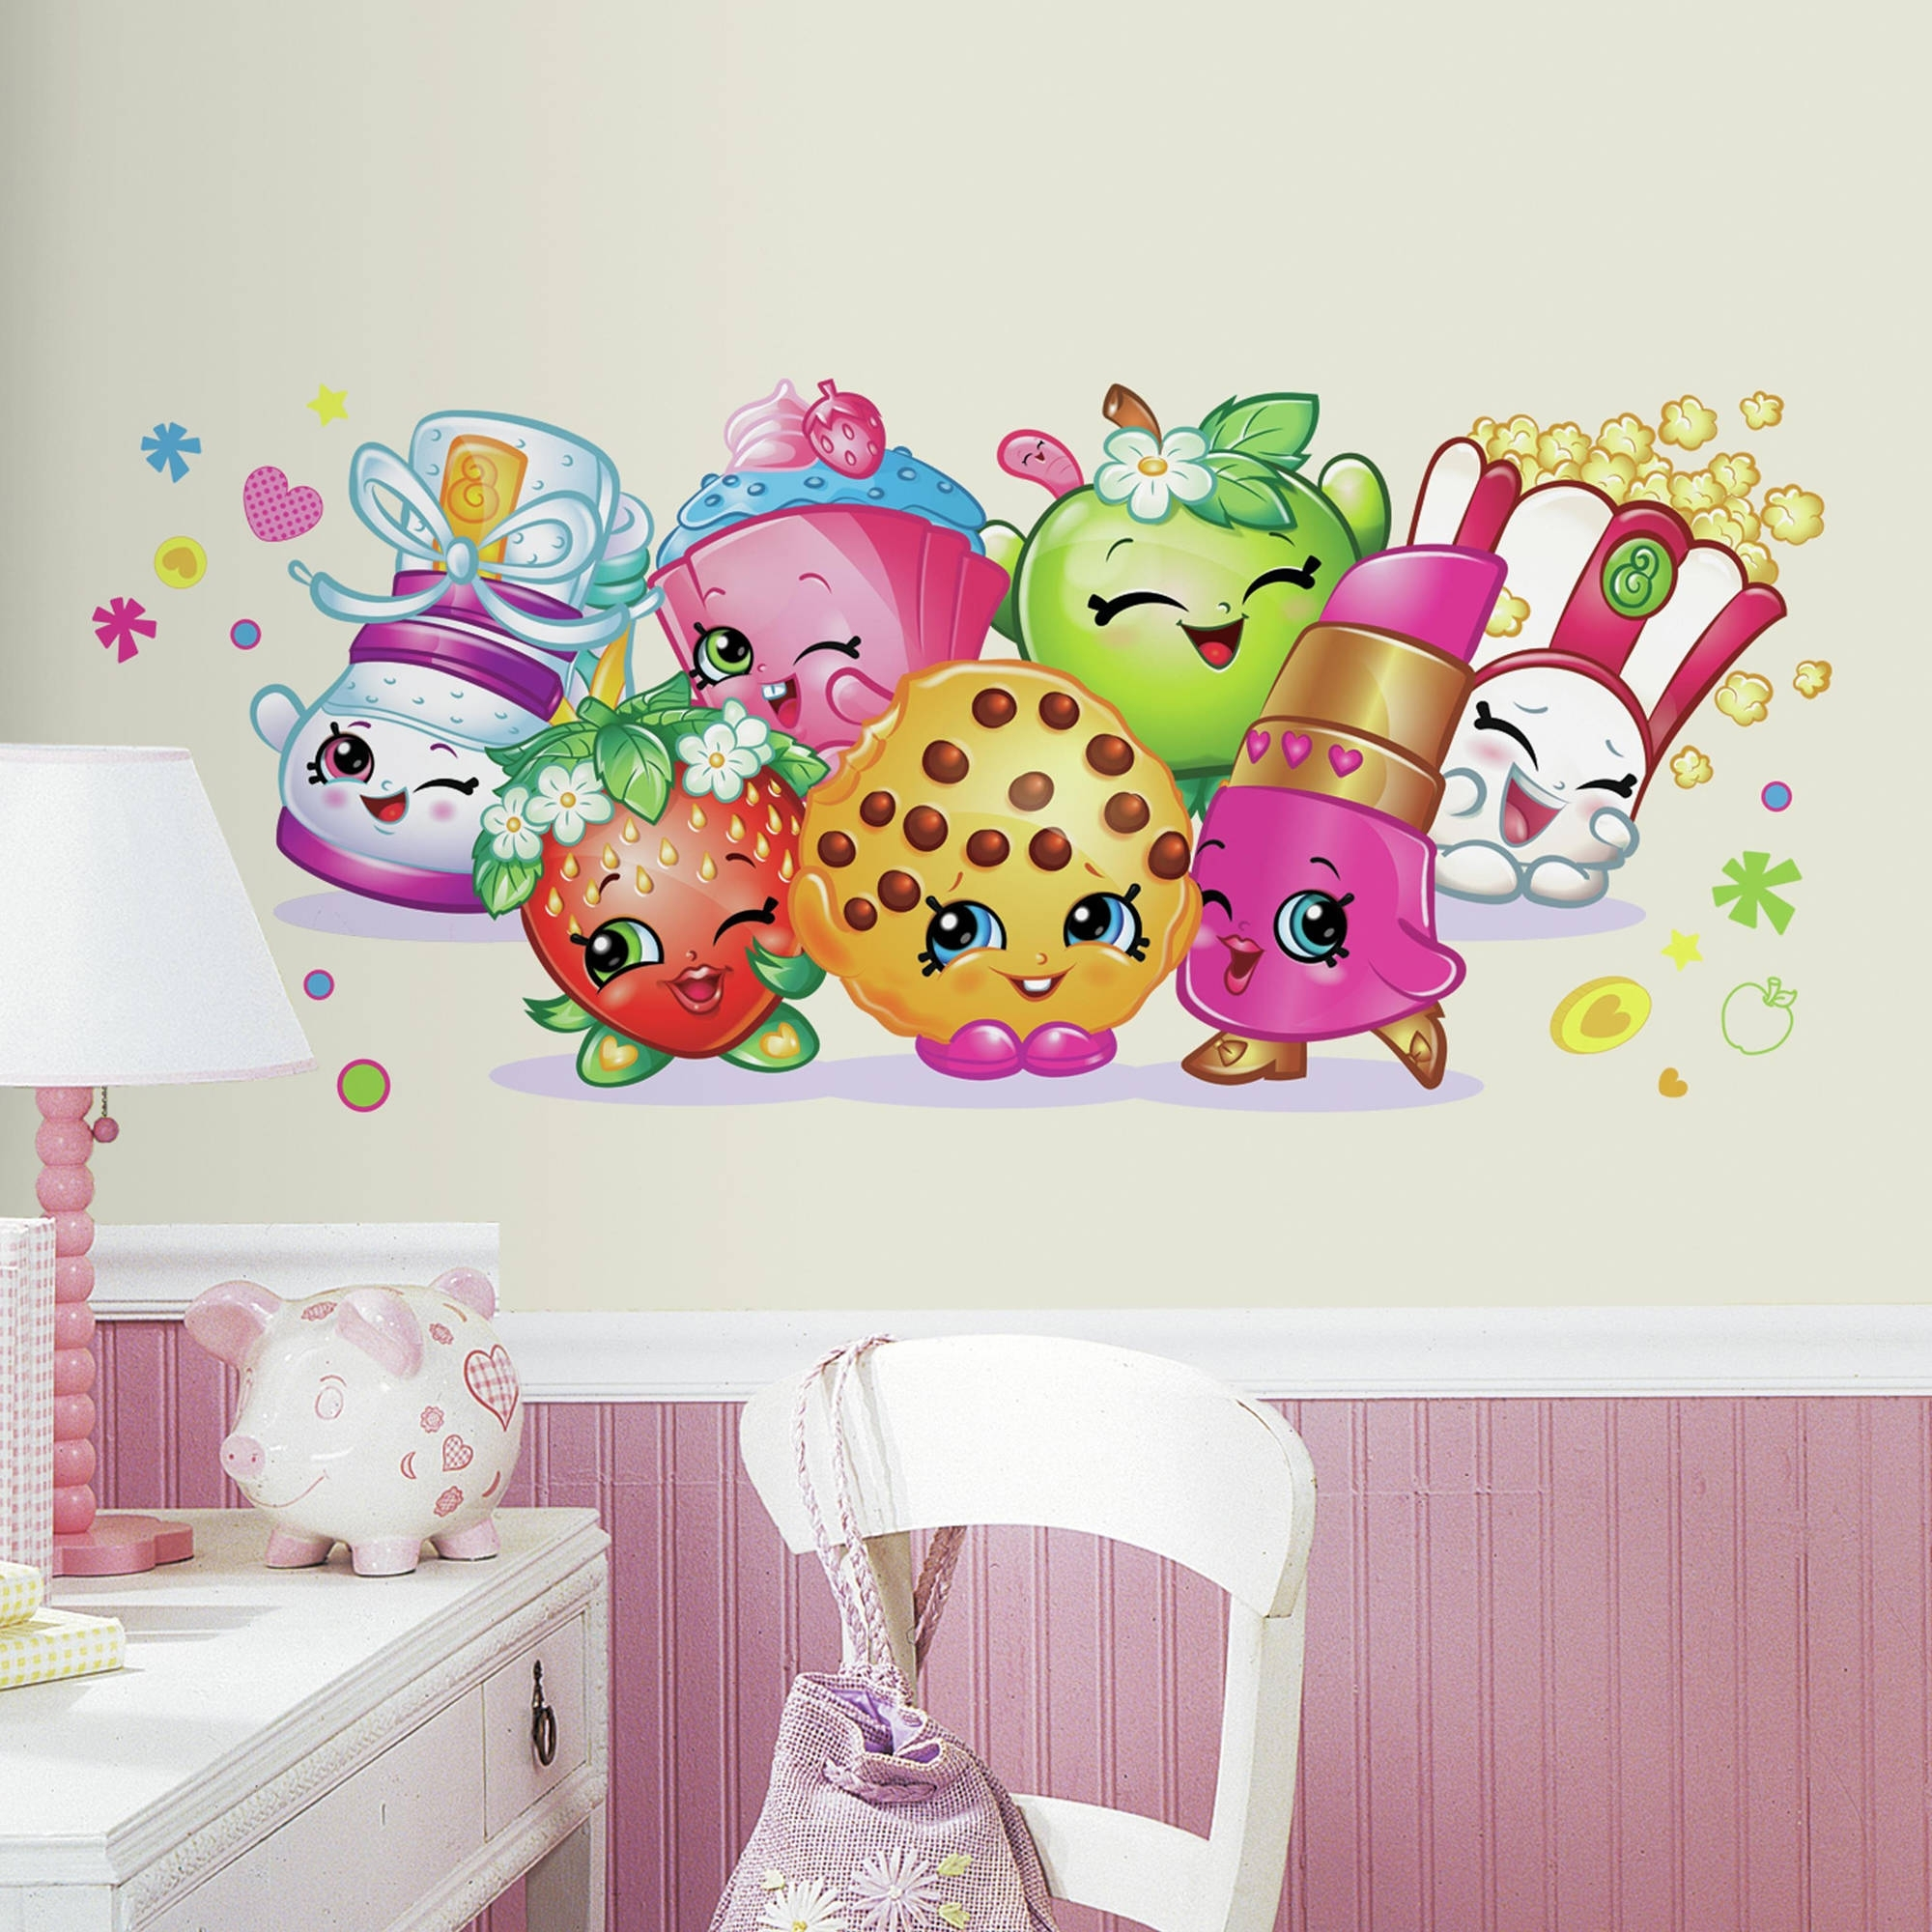 Walmart Wall Stickers Regarding Newest Roommates Shopkins Burst Peel And Stick Giant Wall Decals (View 13 of 15)